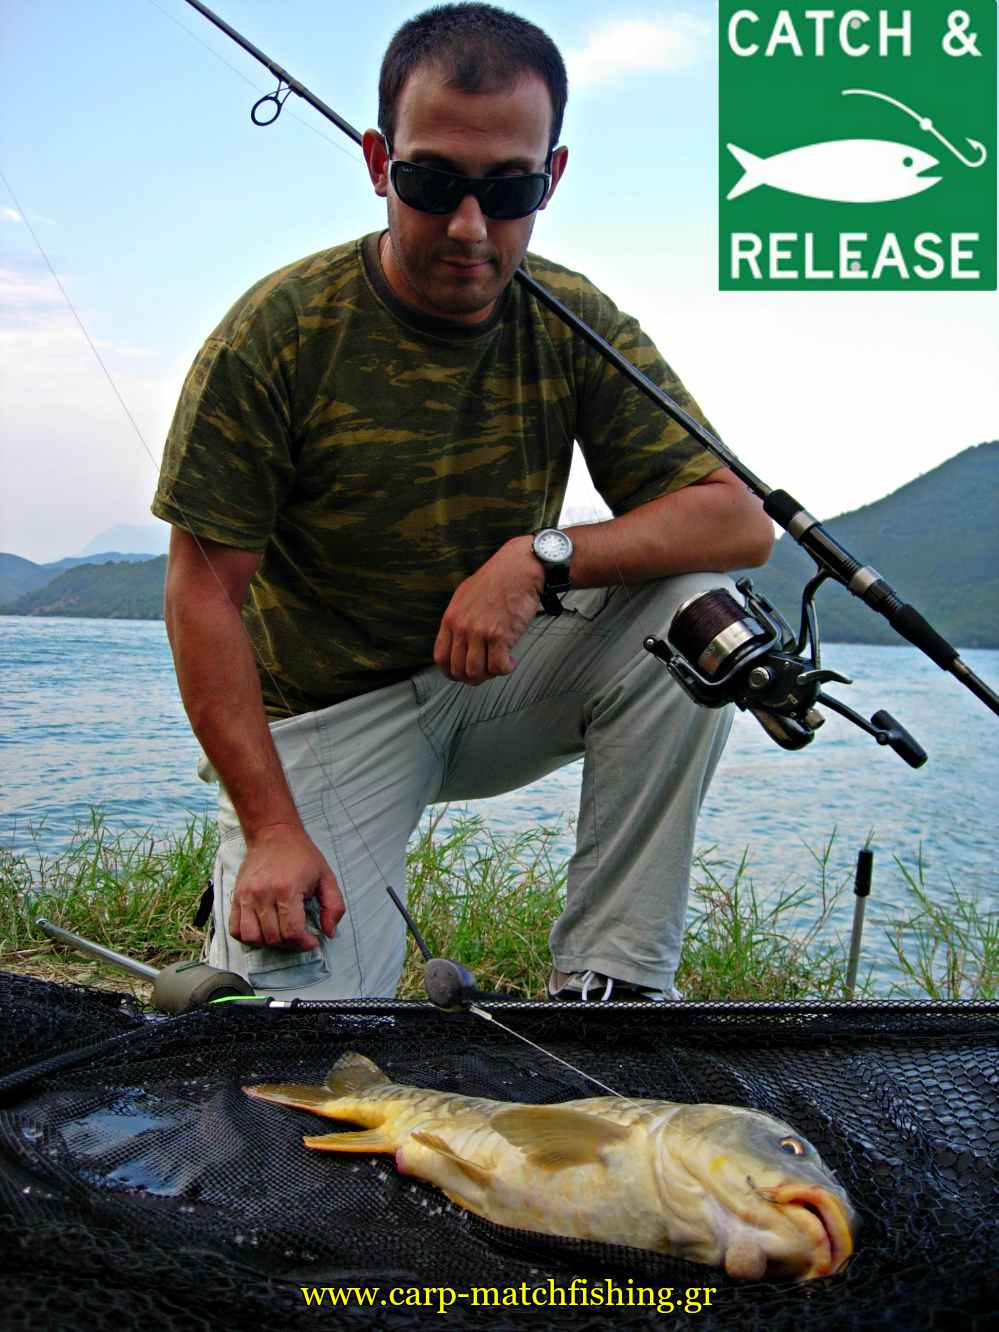 carp-catch-and-release-zaras-carpmatchfishing